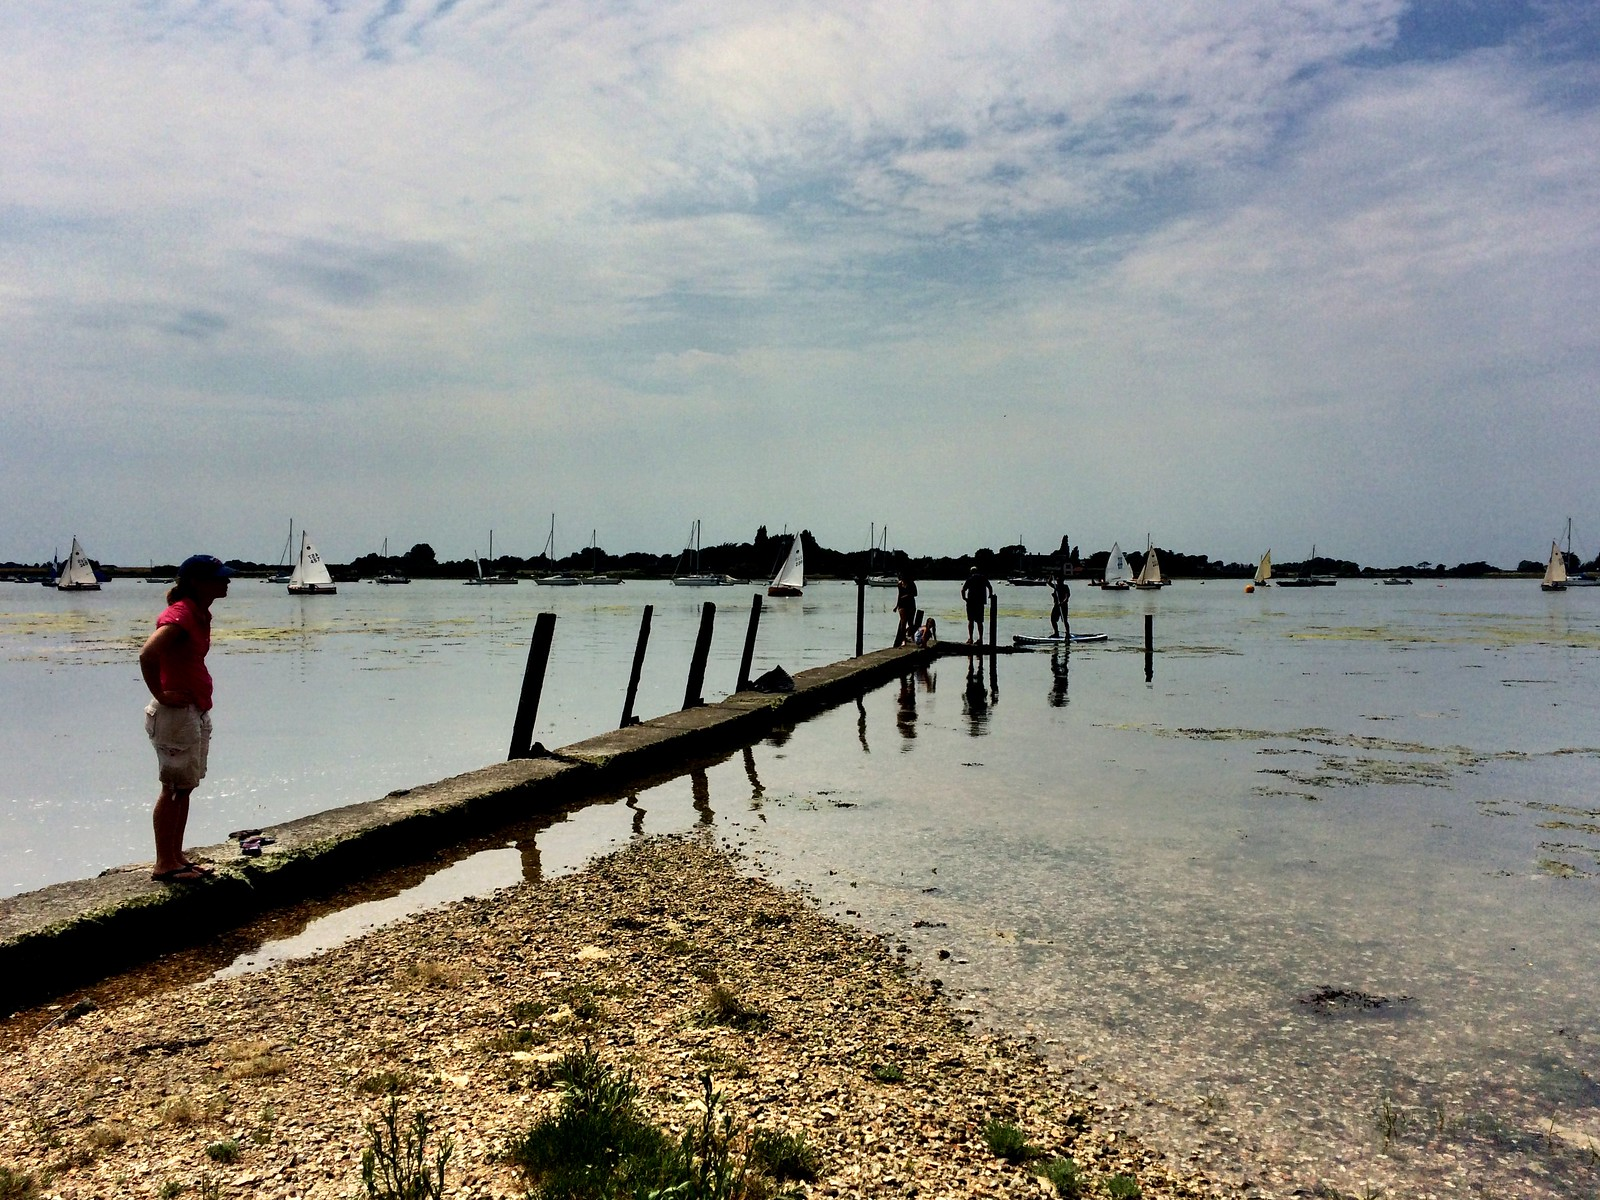 July 1, 2018: Southbourne to Chichester